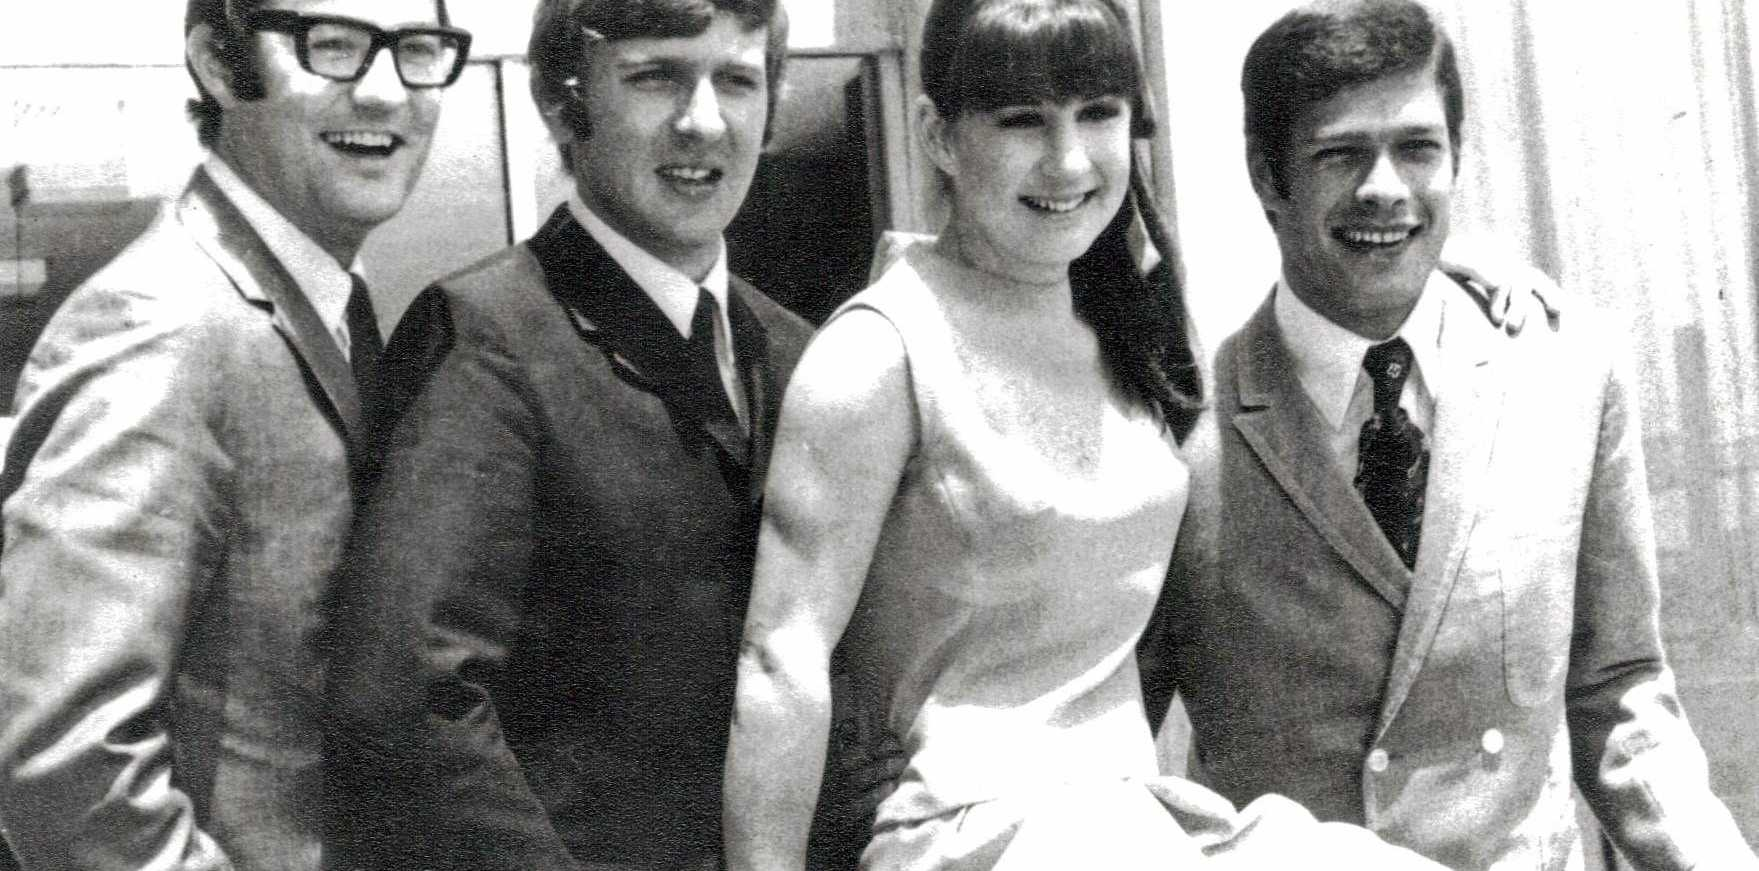 THE SEEKERS IN THE '60S: Athol Guy, Bruce Woodley, Judith Durham and Keith Potger.